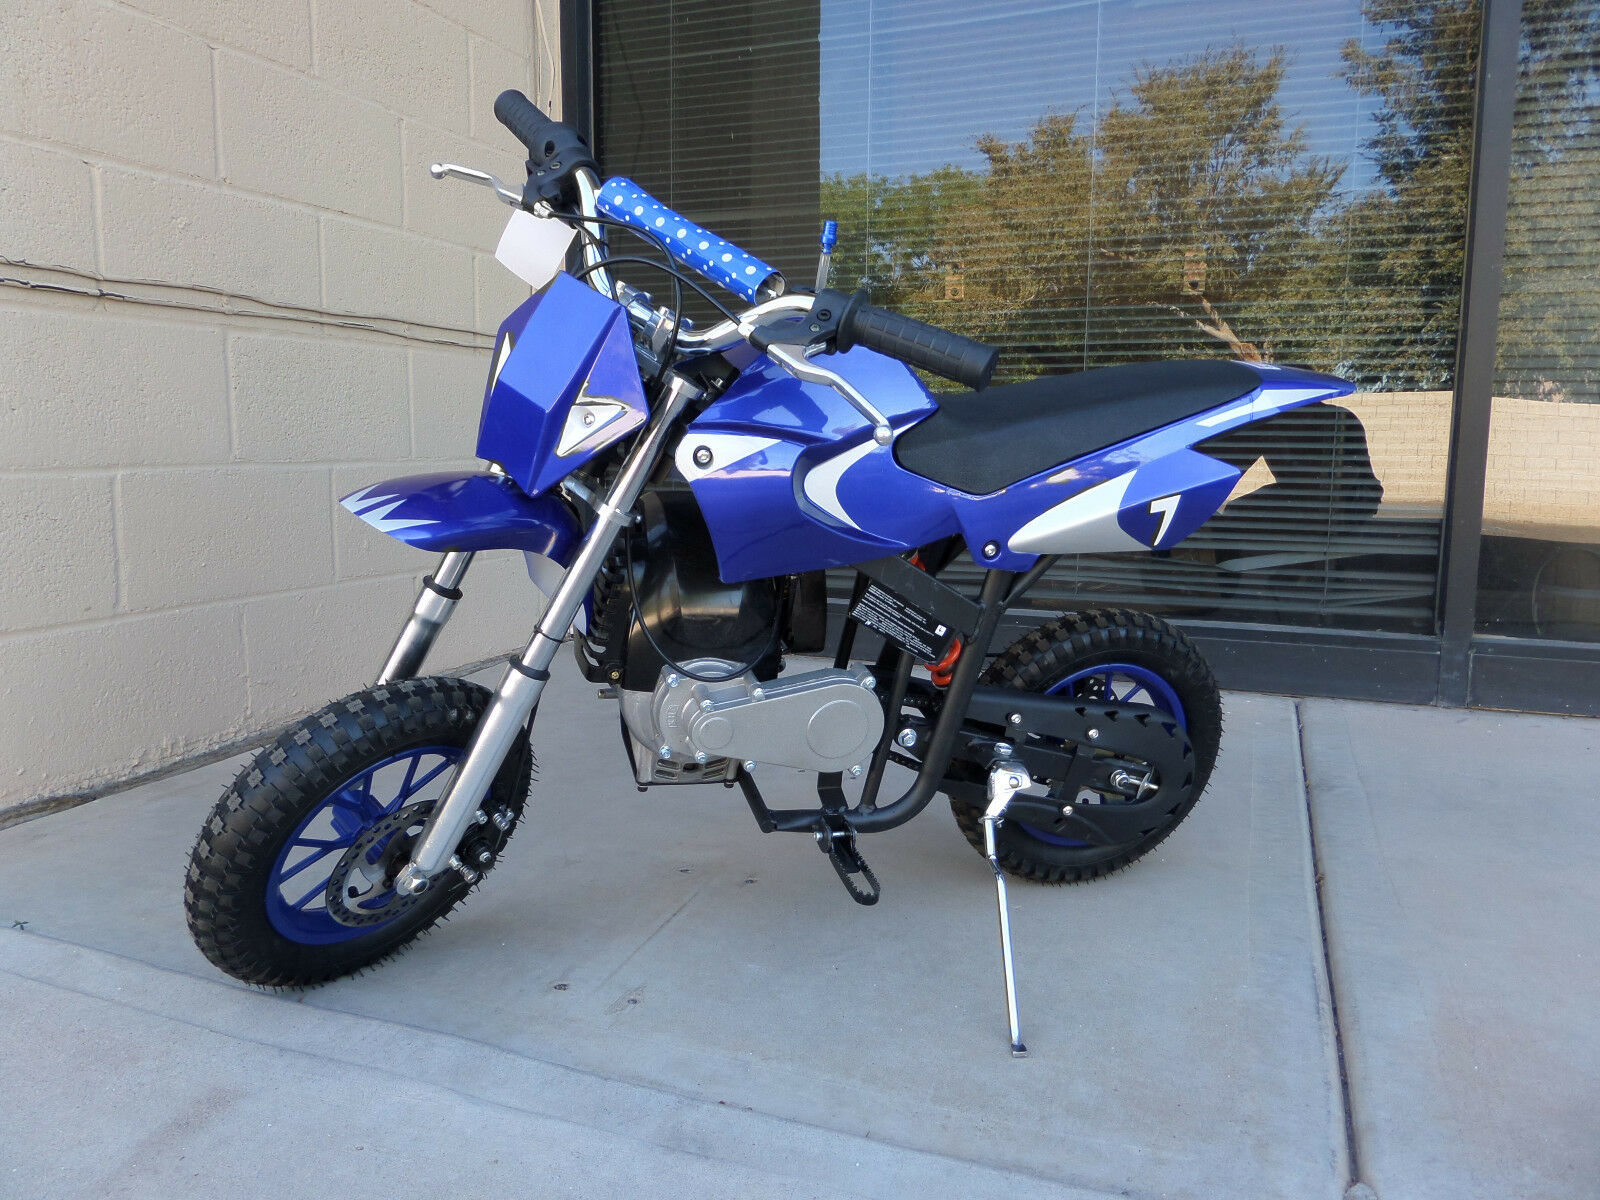 Brand New High Performance 4 Stroke 40cc bluee Mini Dirt Bike New